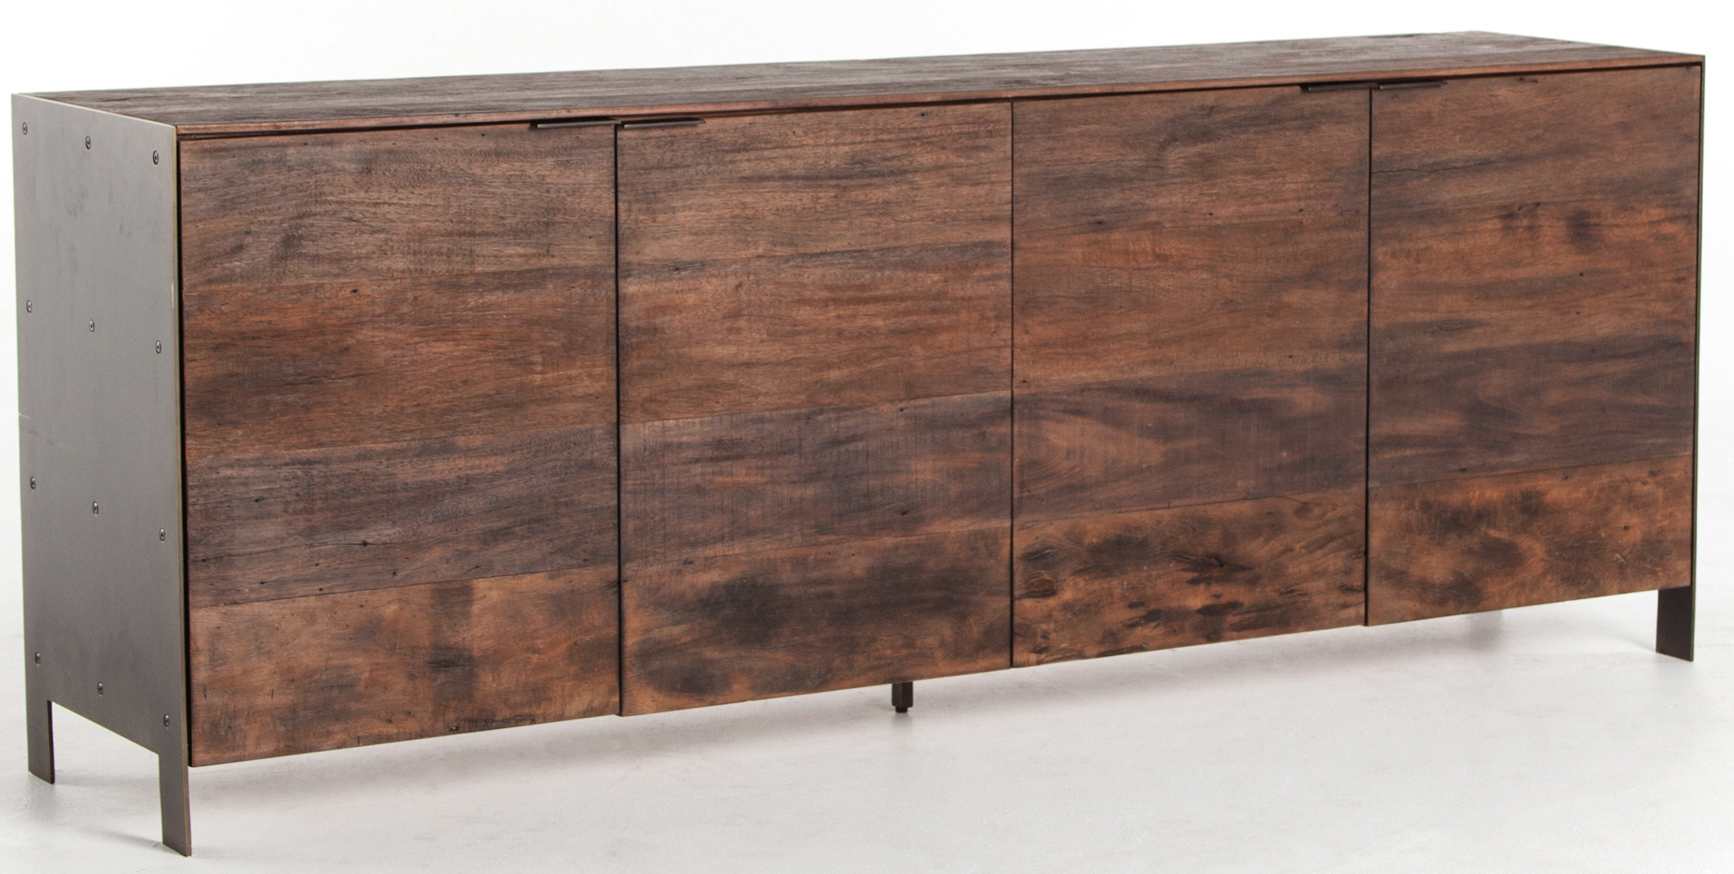 Cabinets, Consoles & Sofa Tables | Htgt Furniture Within Natural 2 Door Plasma Console Tables (View 9 of 20)